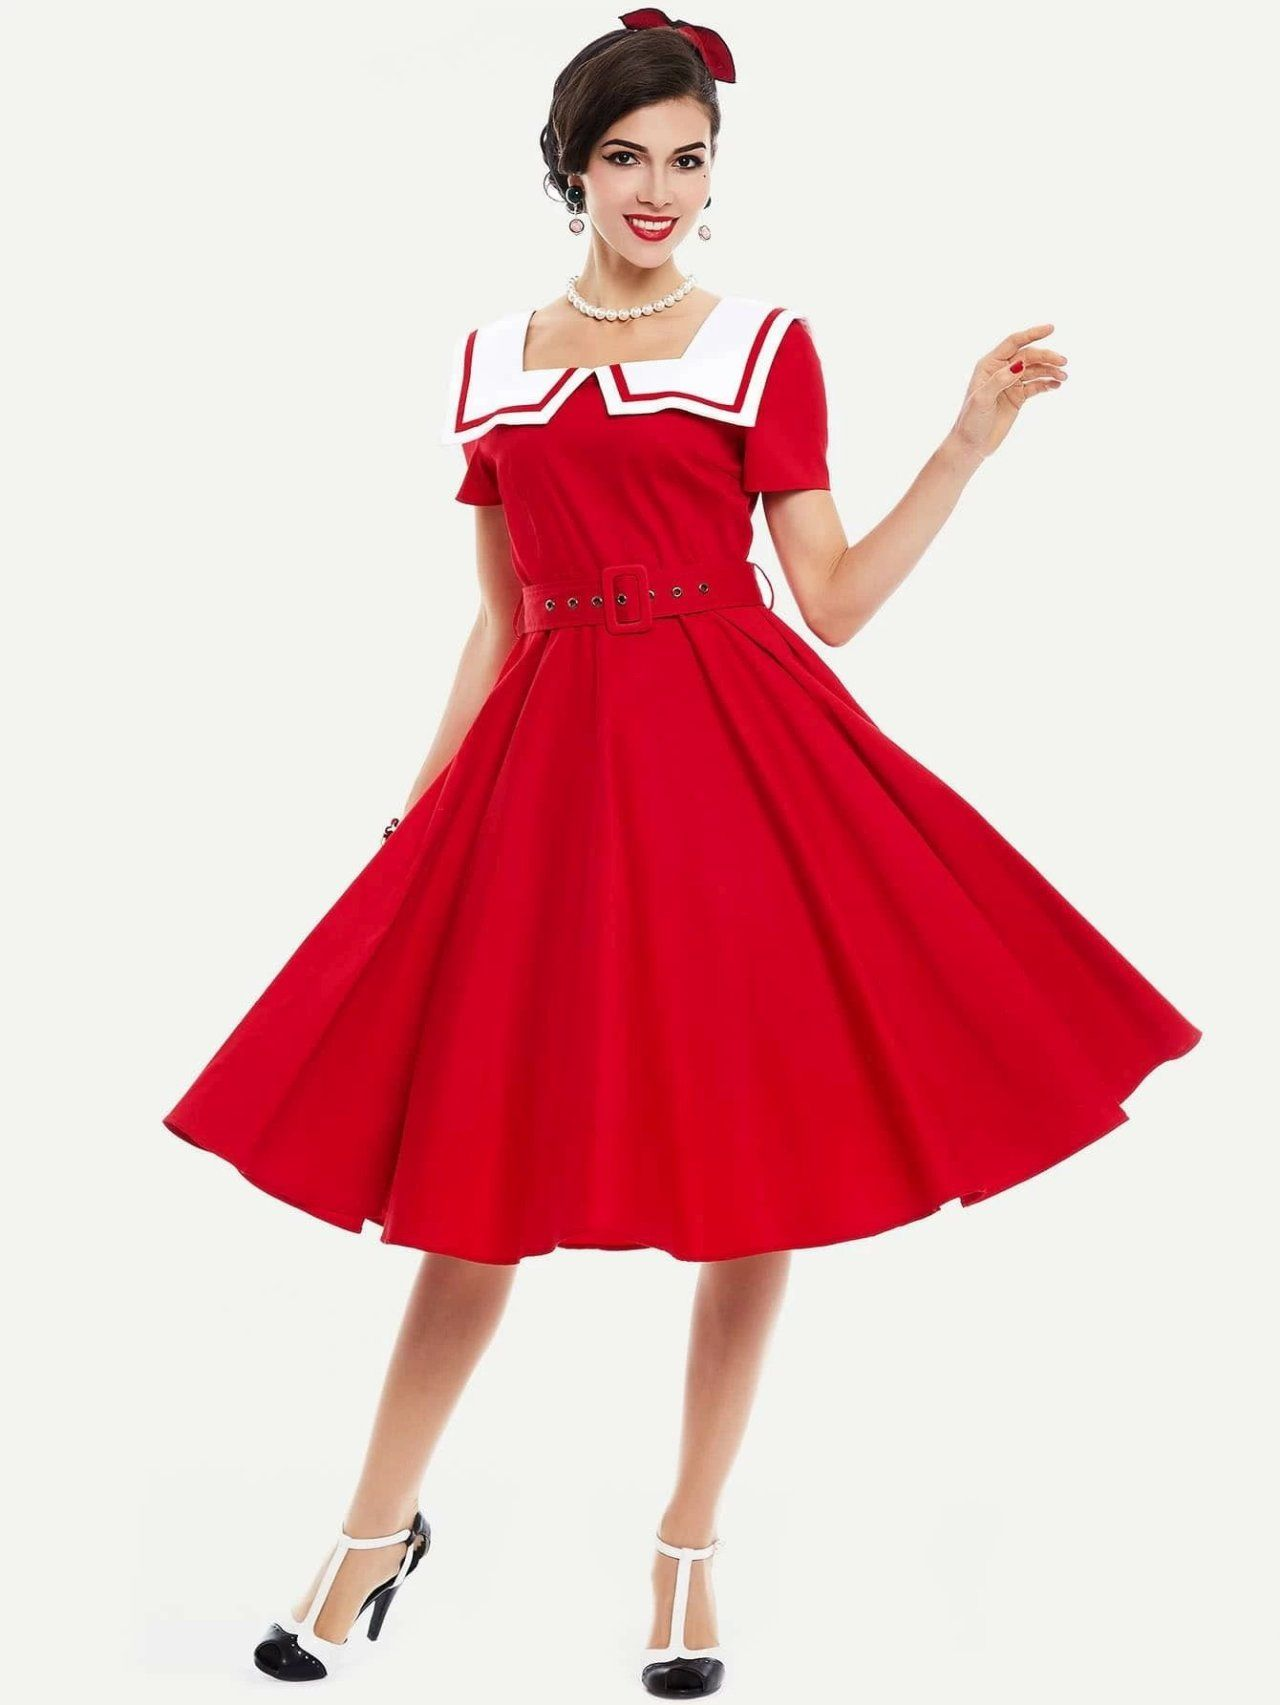 Kirstys Closet In 2021 Vintage Red Dress Dresses Party Dresses For Women [ 1705 x 1280 Pixel ]